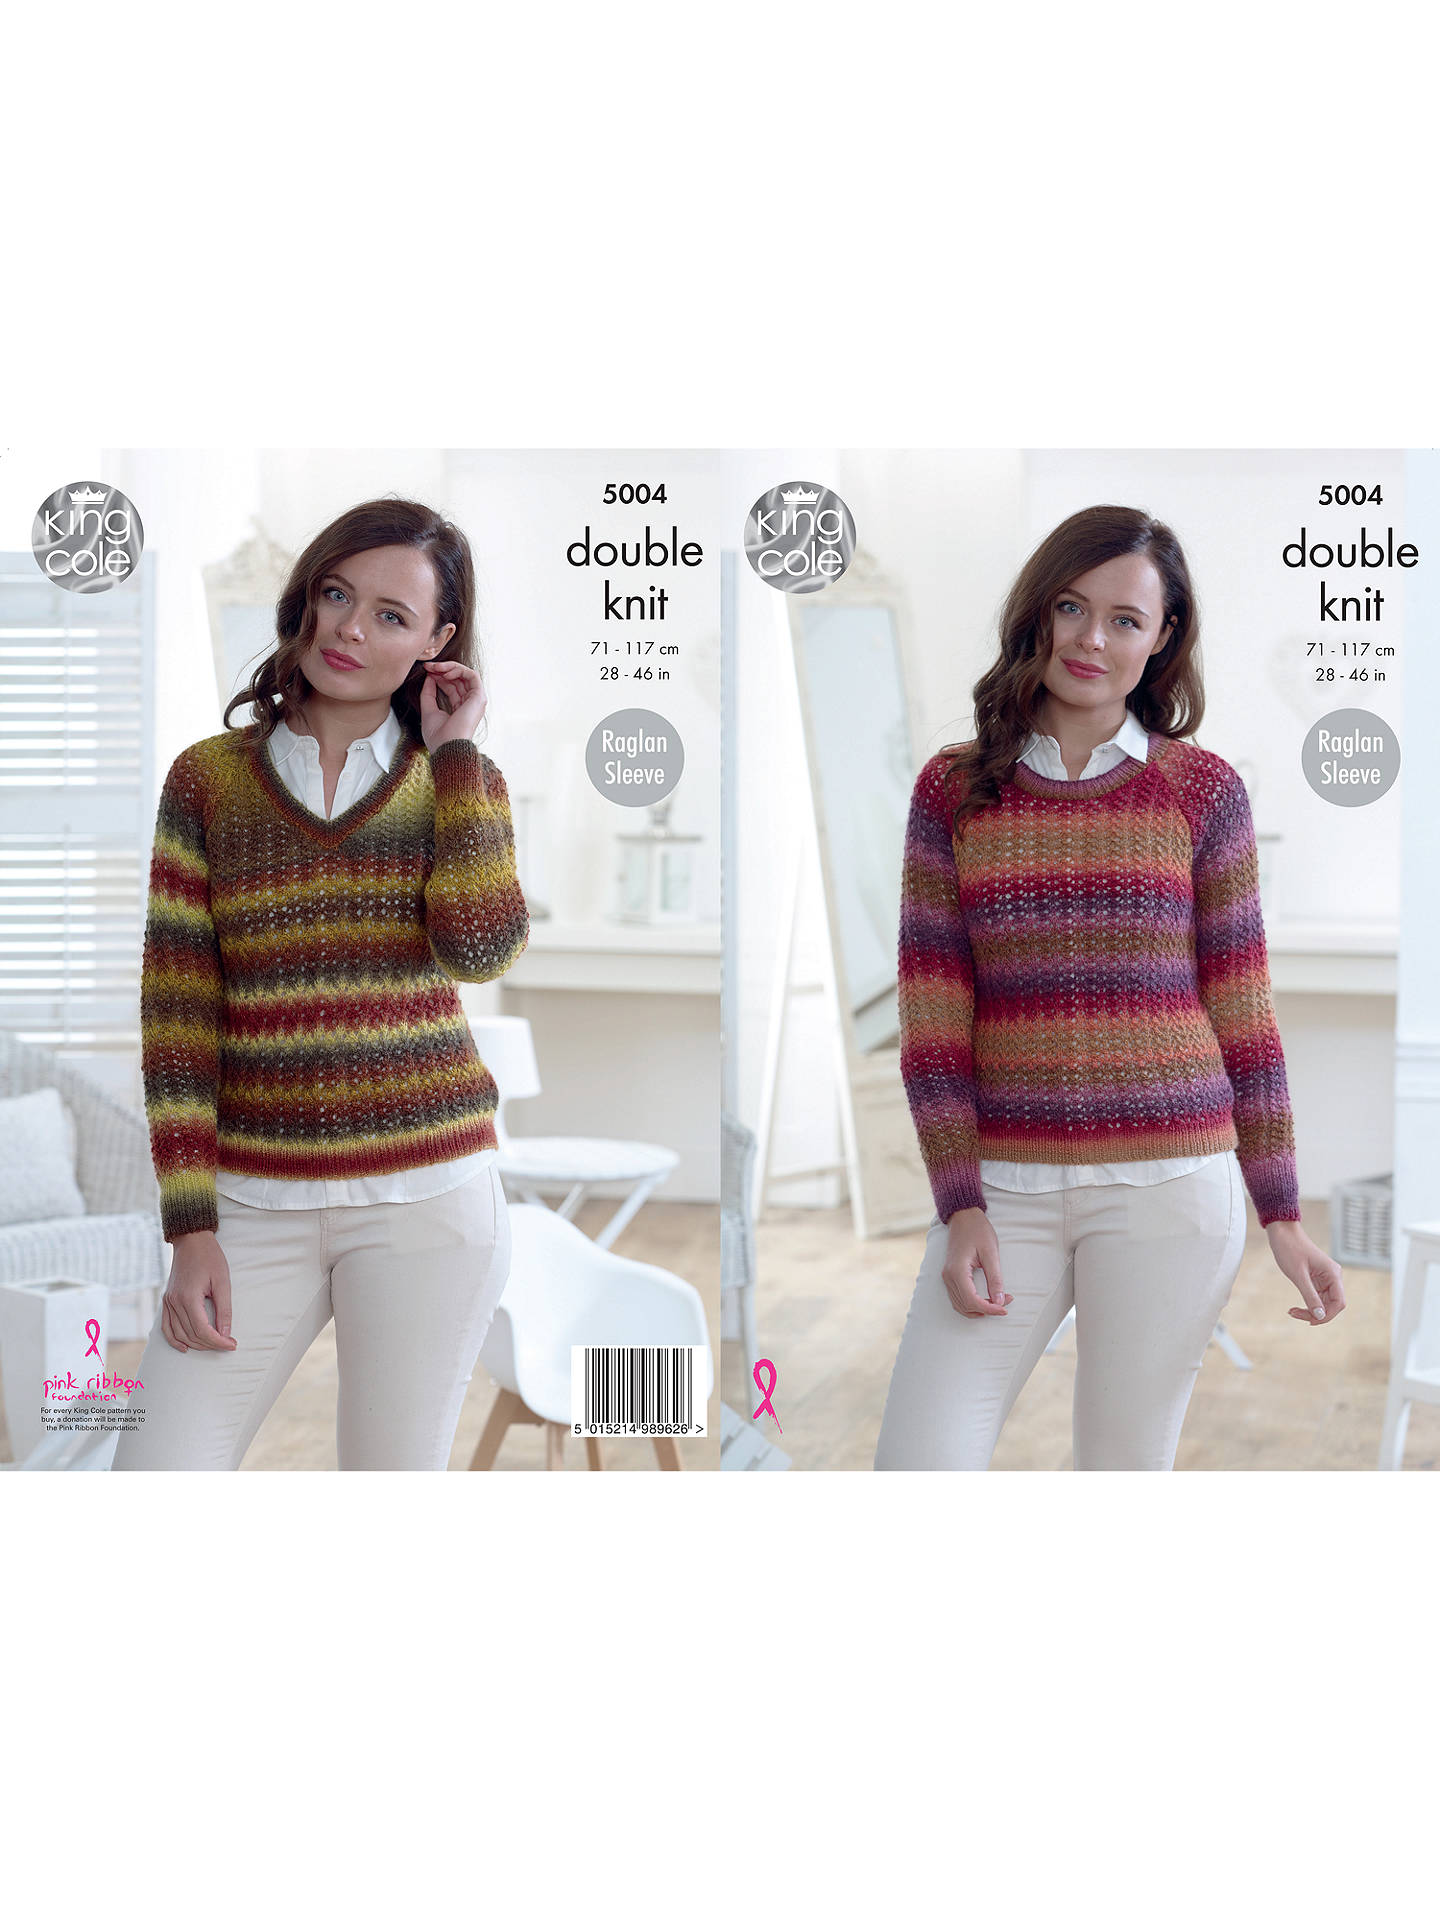 502a82fbccfb Buy King Cole Riot DK Ladies Jumper and Cardigan Knitting Pattern